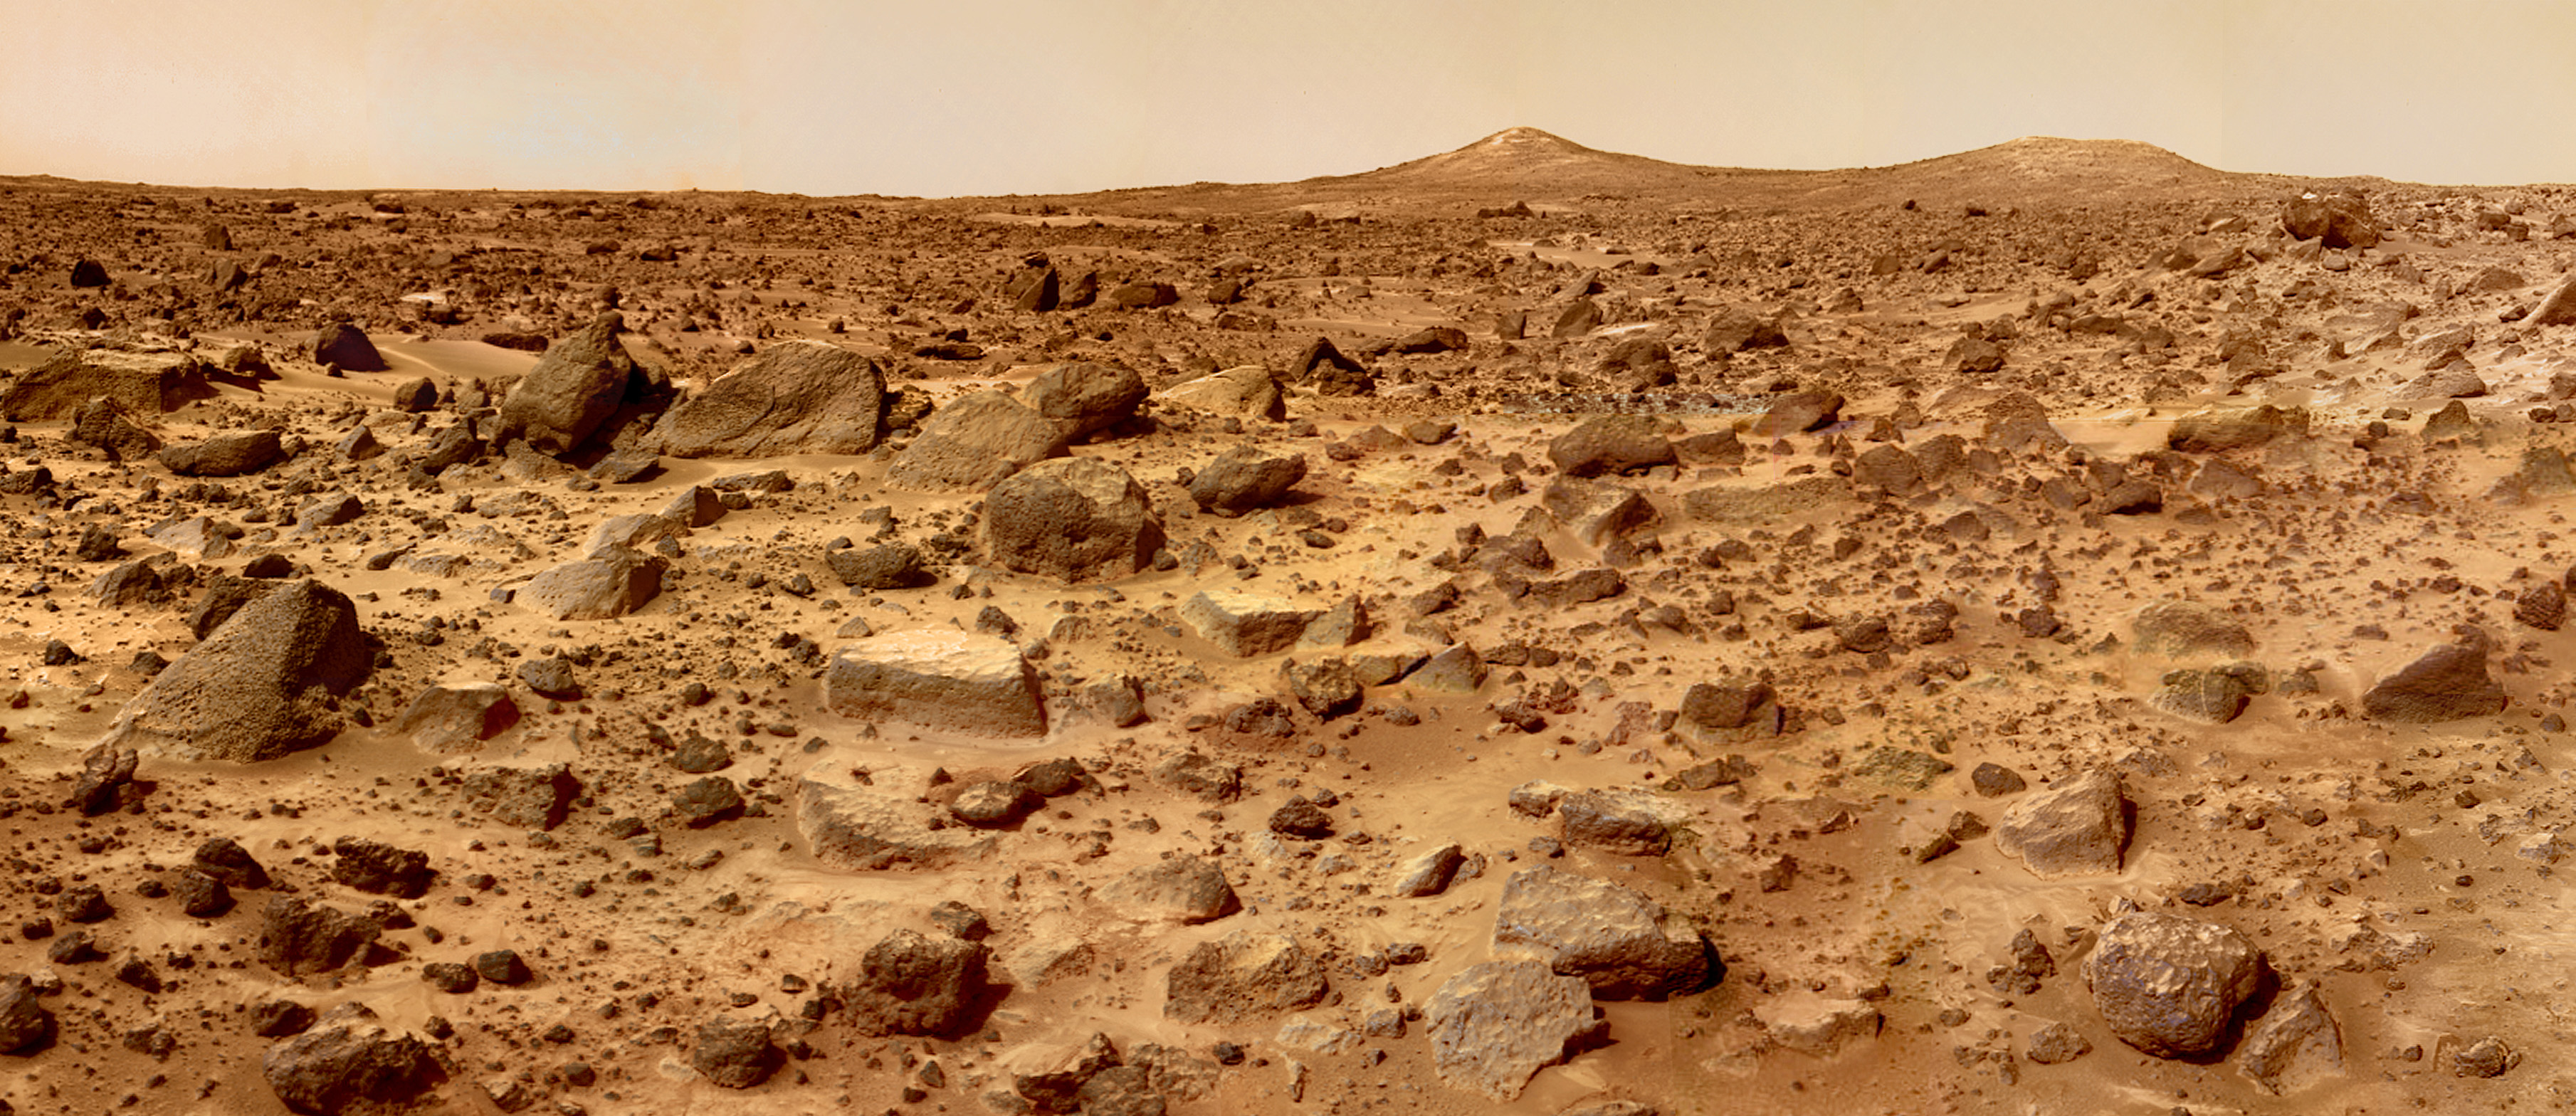 pictures from nasa mars - photo #39